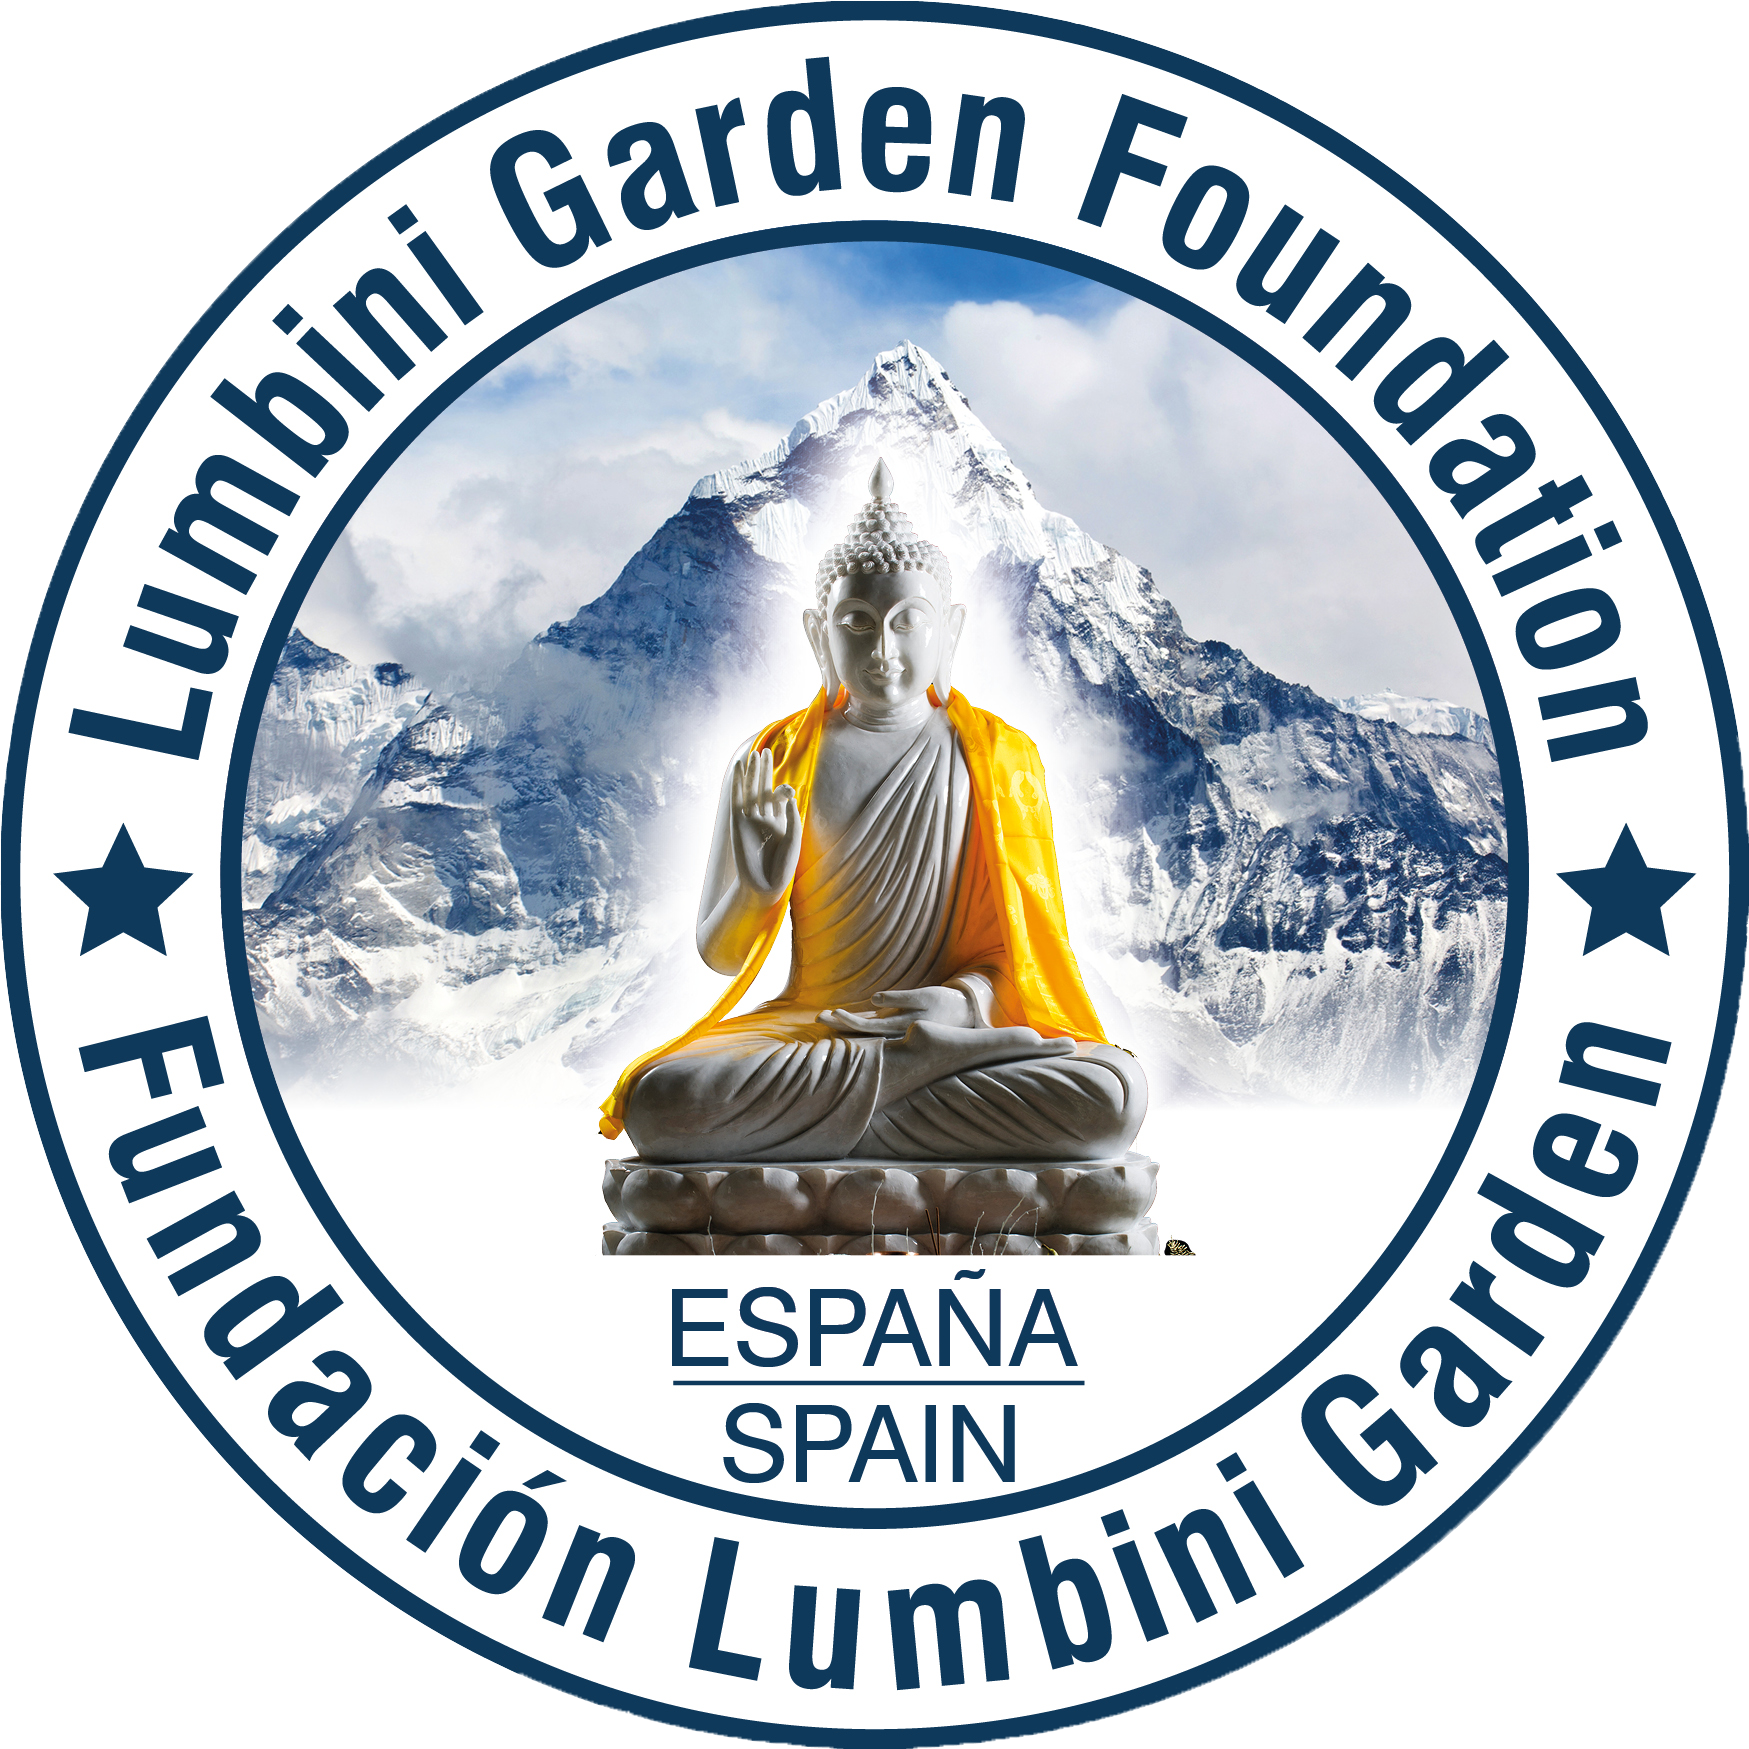 Lumbini Garden Foundation